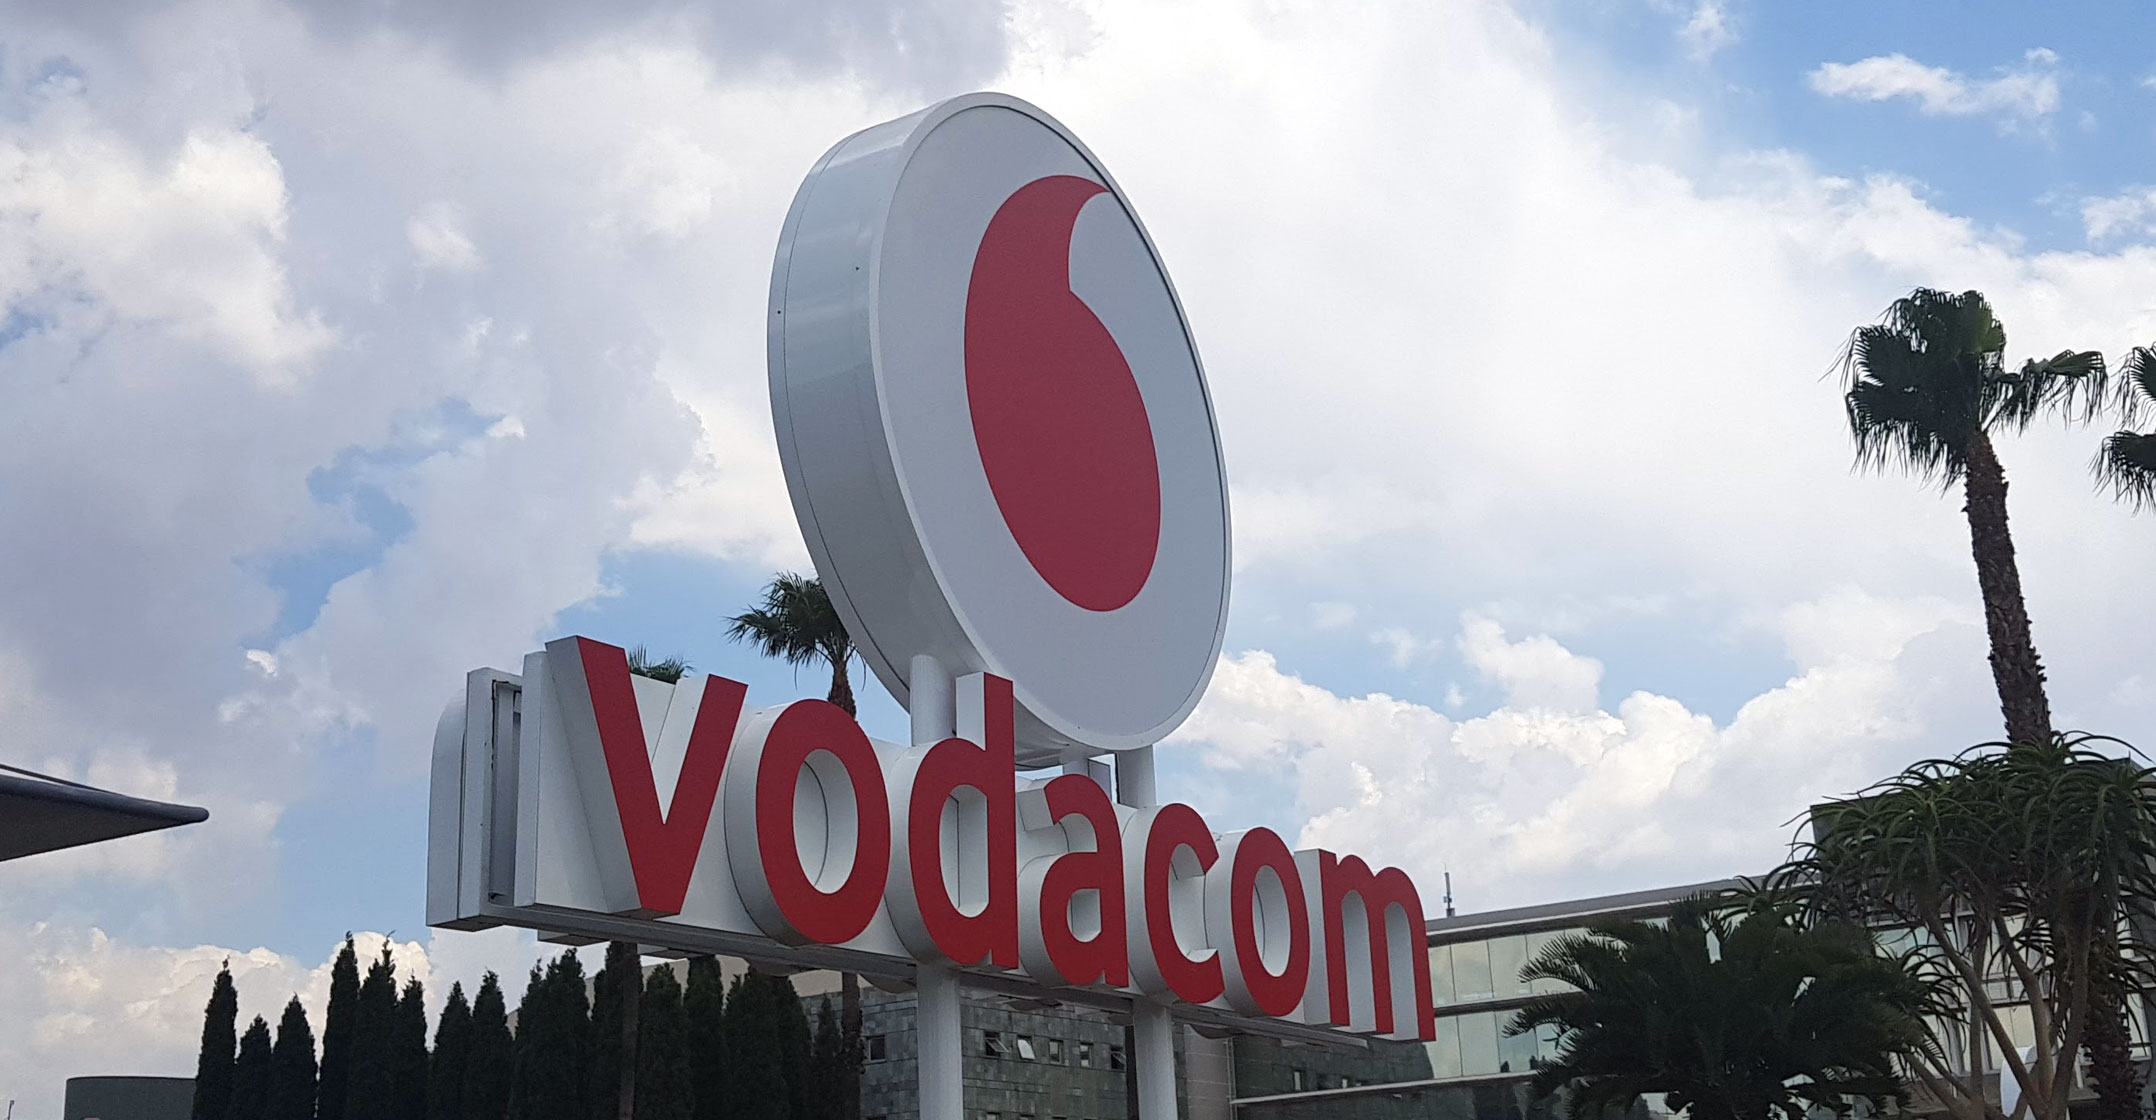 Vodacom subscriber numbers jump 13% - TechCentral